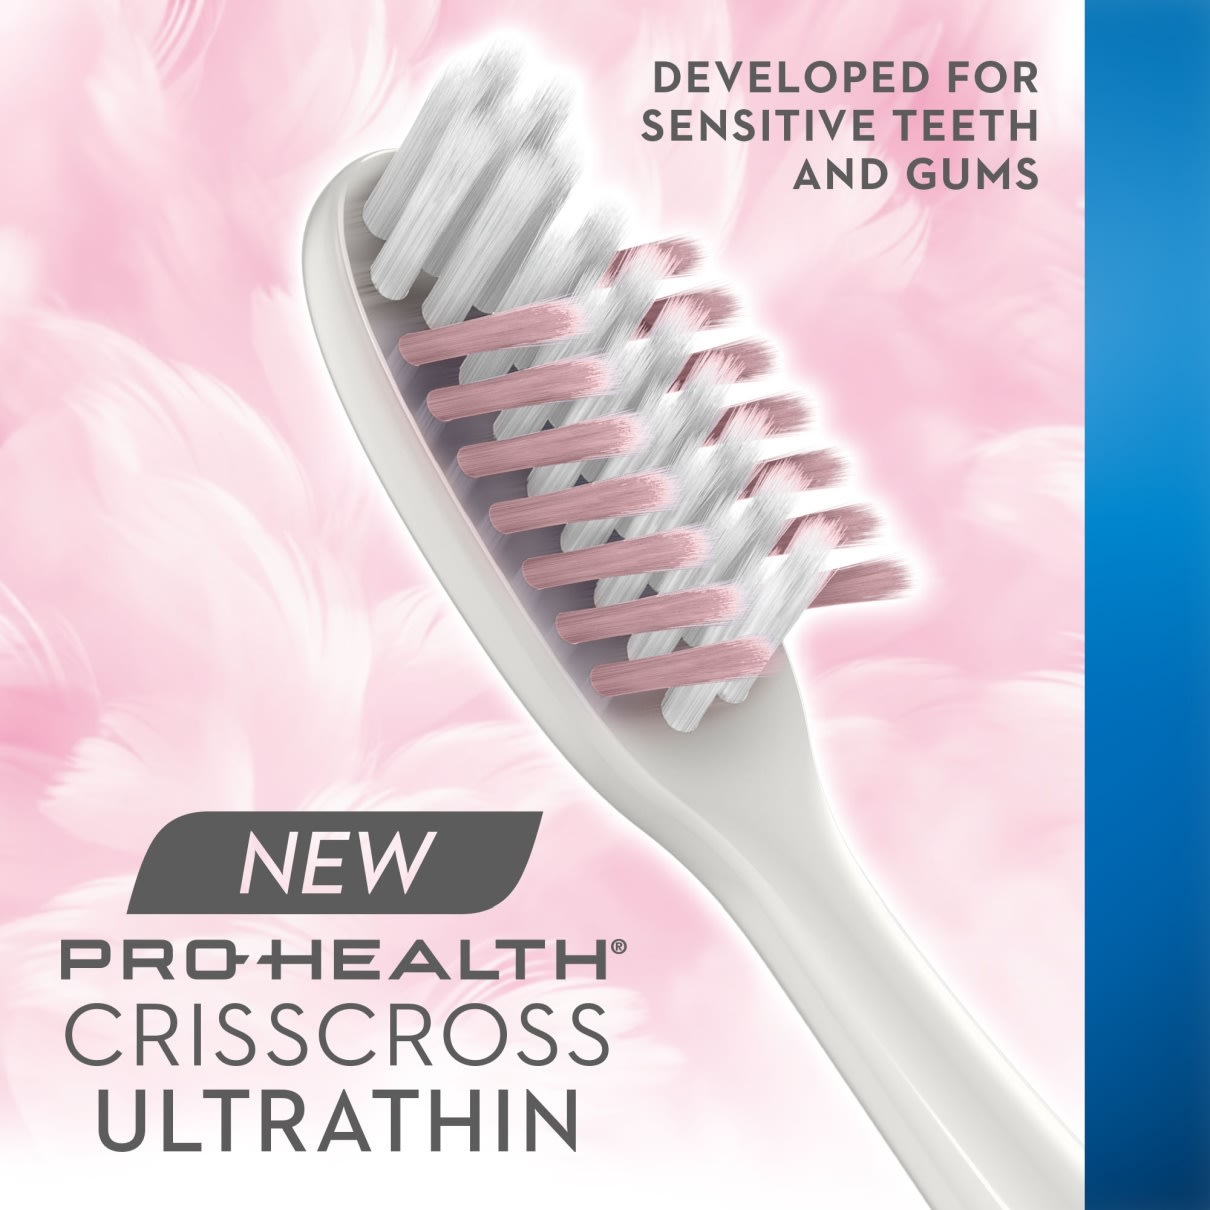 Oral-B Pro-Health Ultrathin Sensitive toothbrush